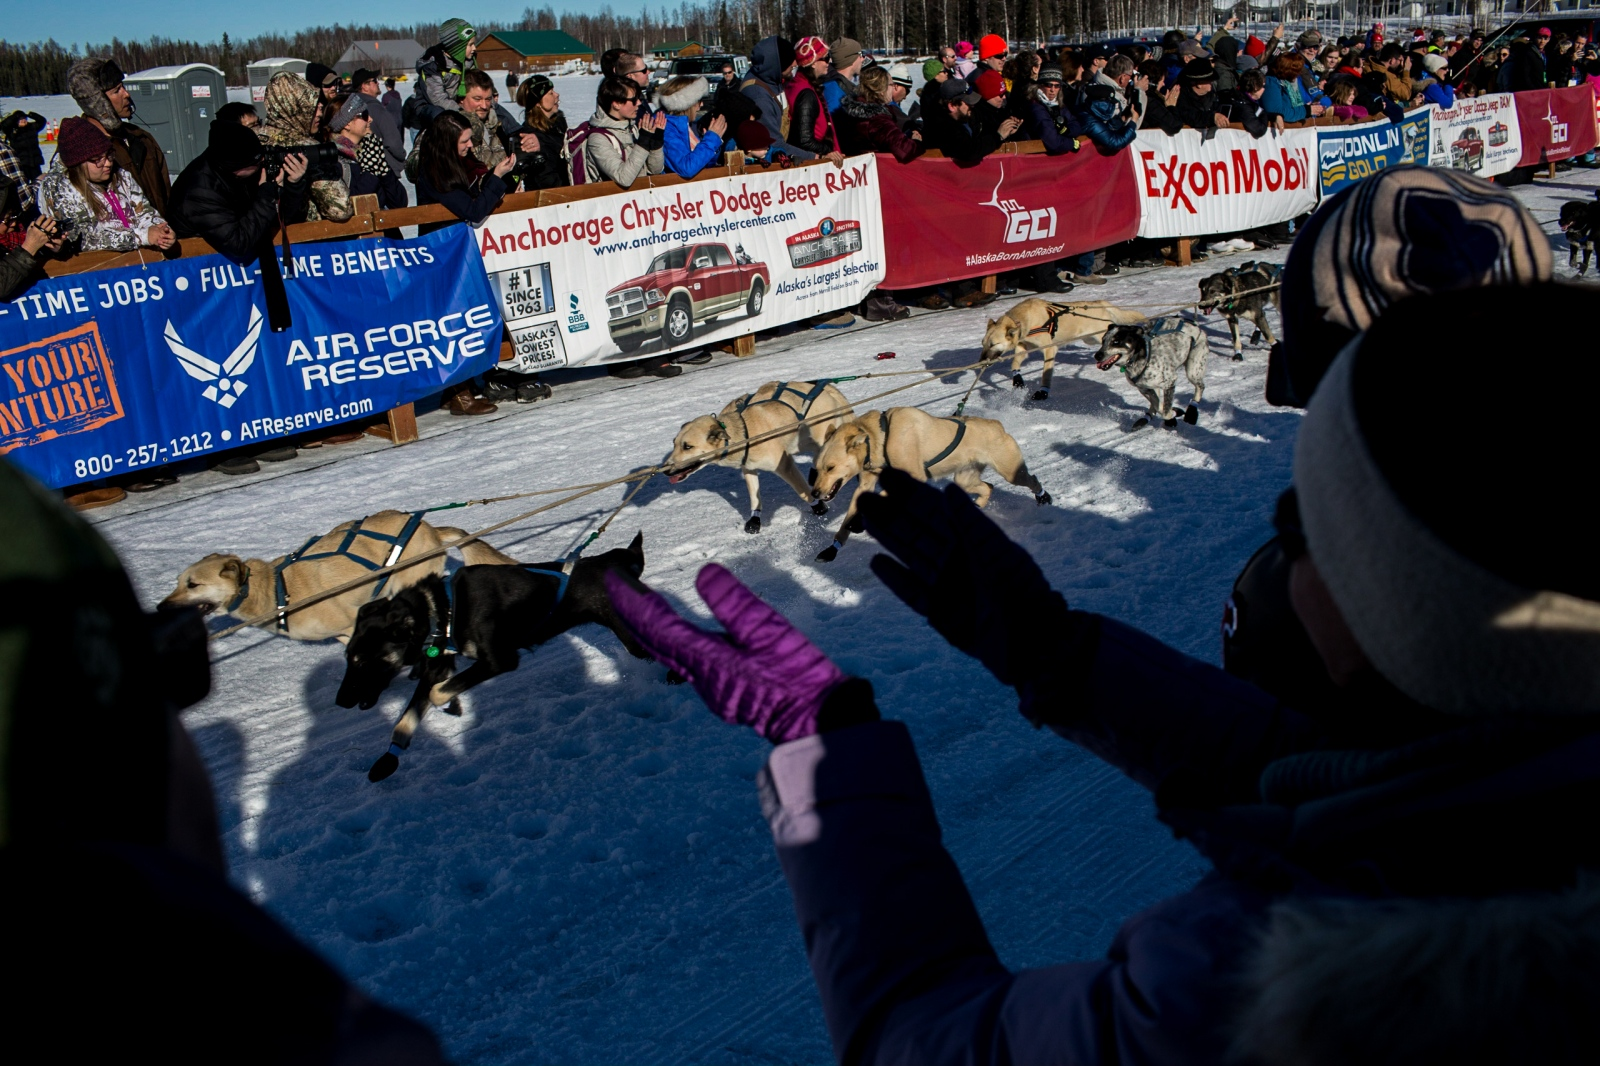 Fans cheer as a mushing team run past at the 2016 Iditarod restart in Willow, Alaska on March 6, 2016.